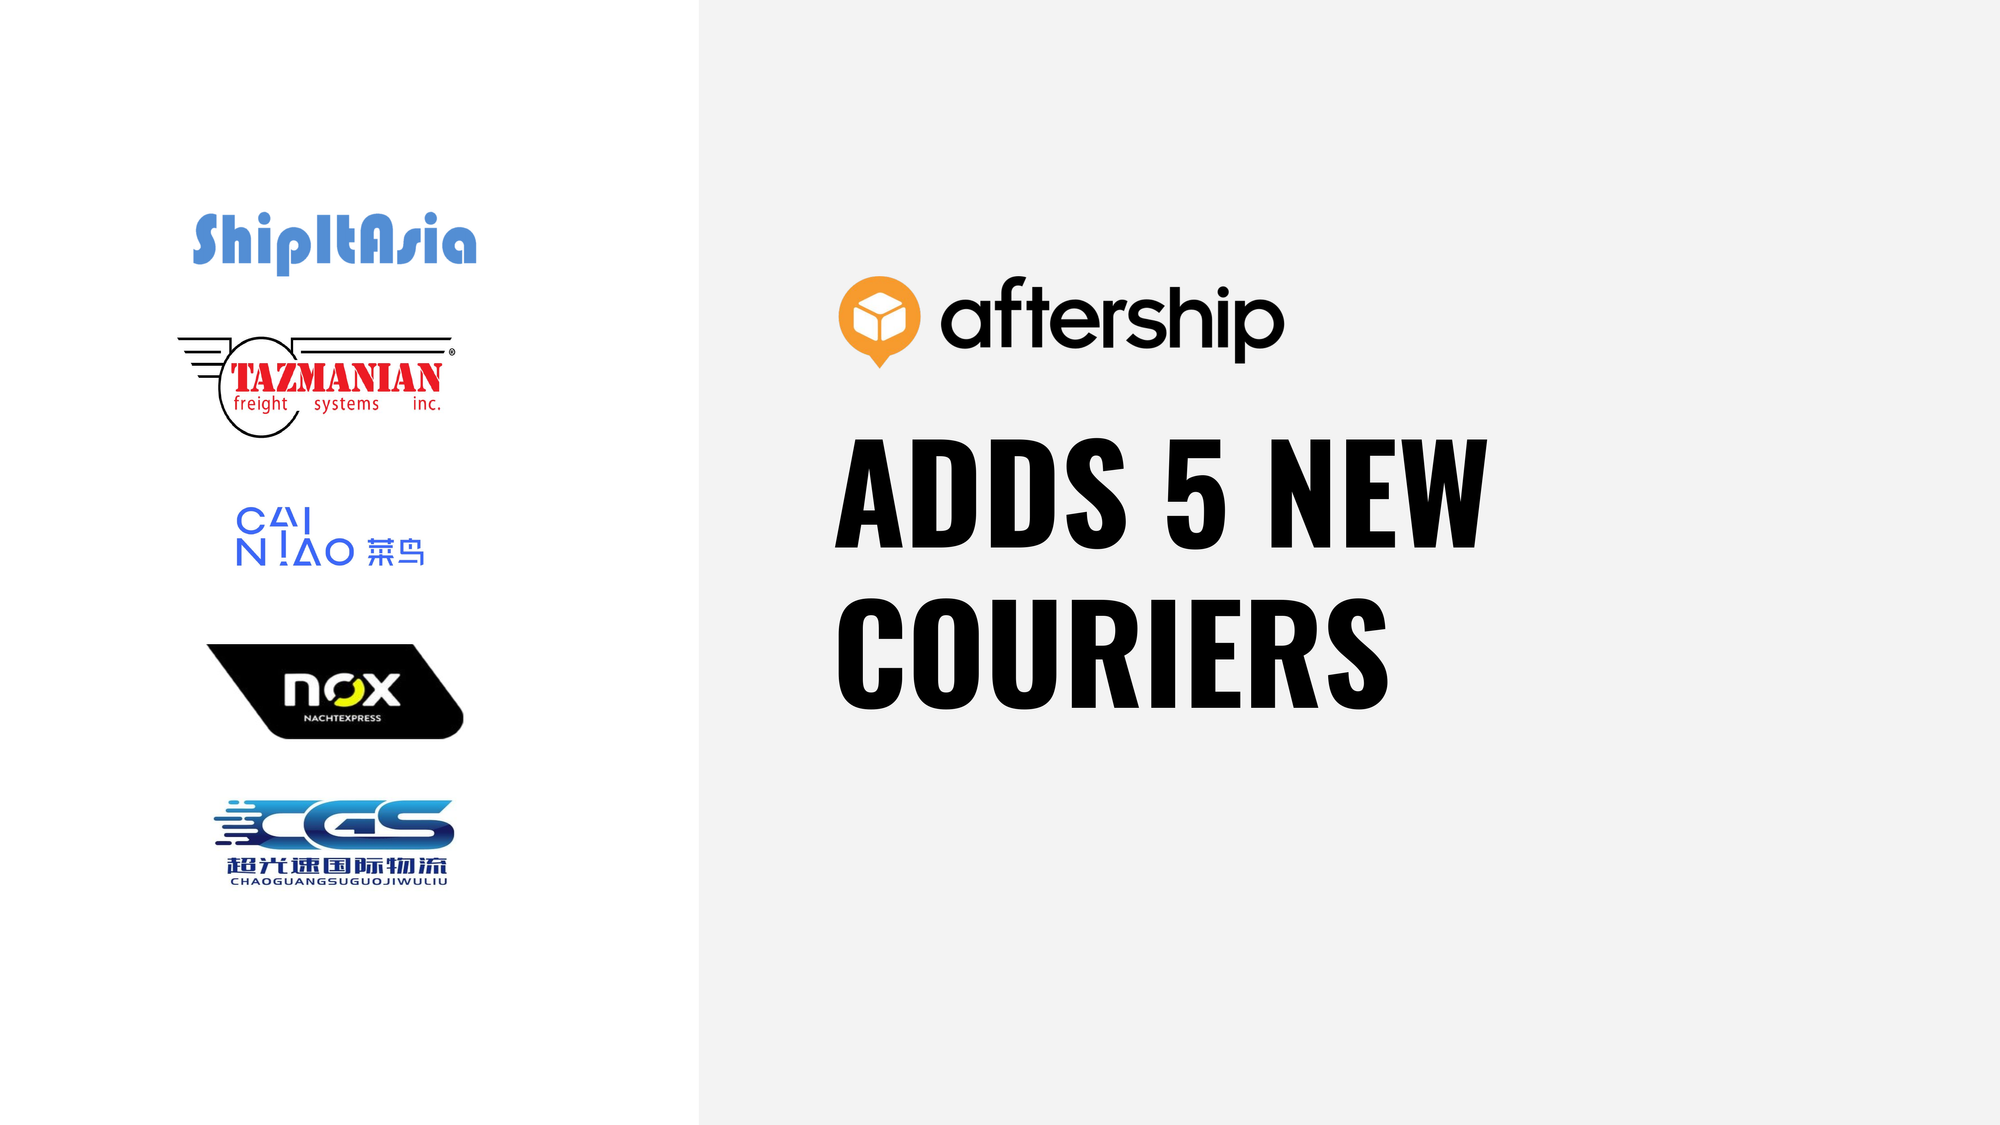 AfterShip adds 5 new couriers this week (21 Sep 2020 to 25 Sep 2020)